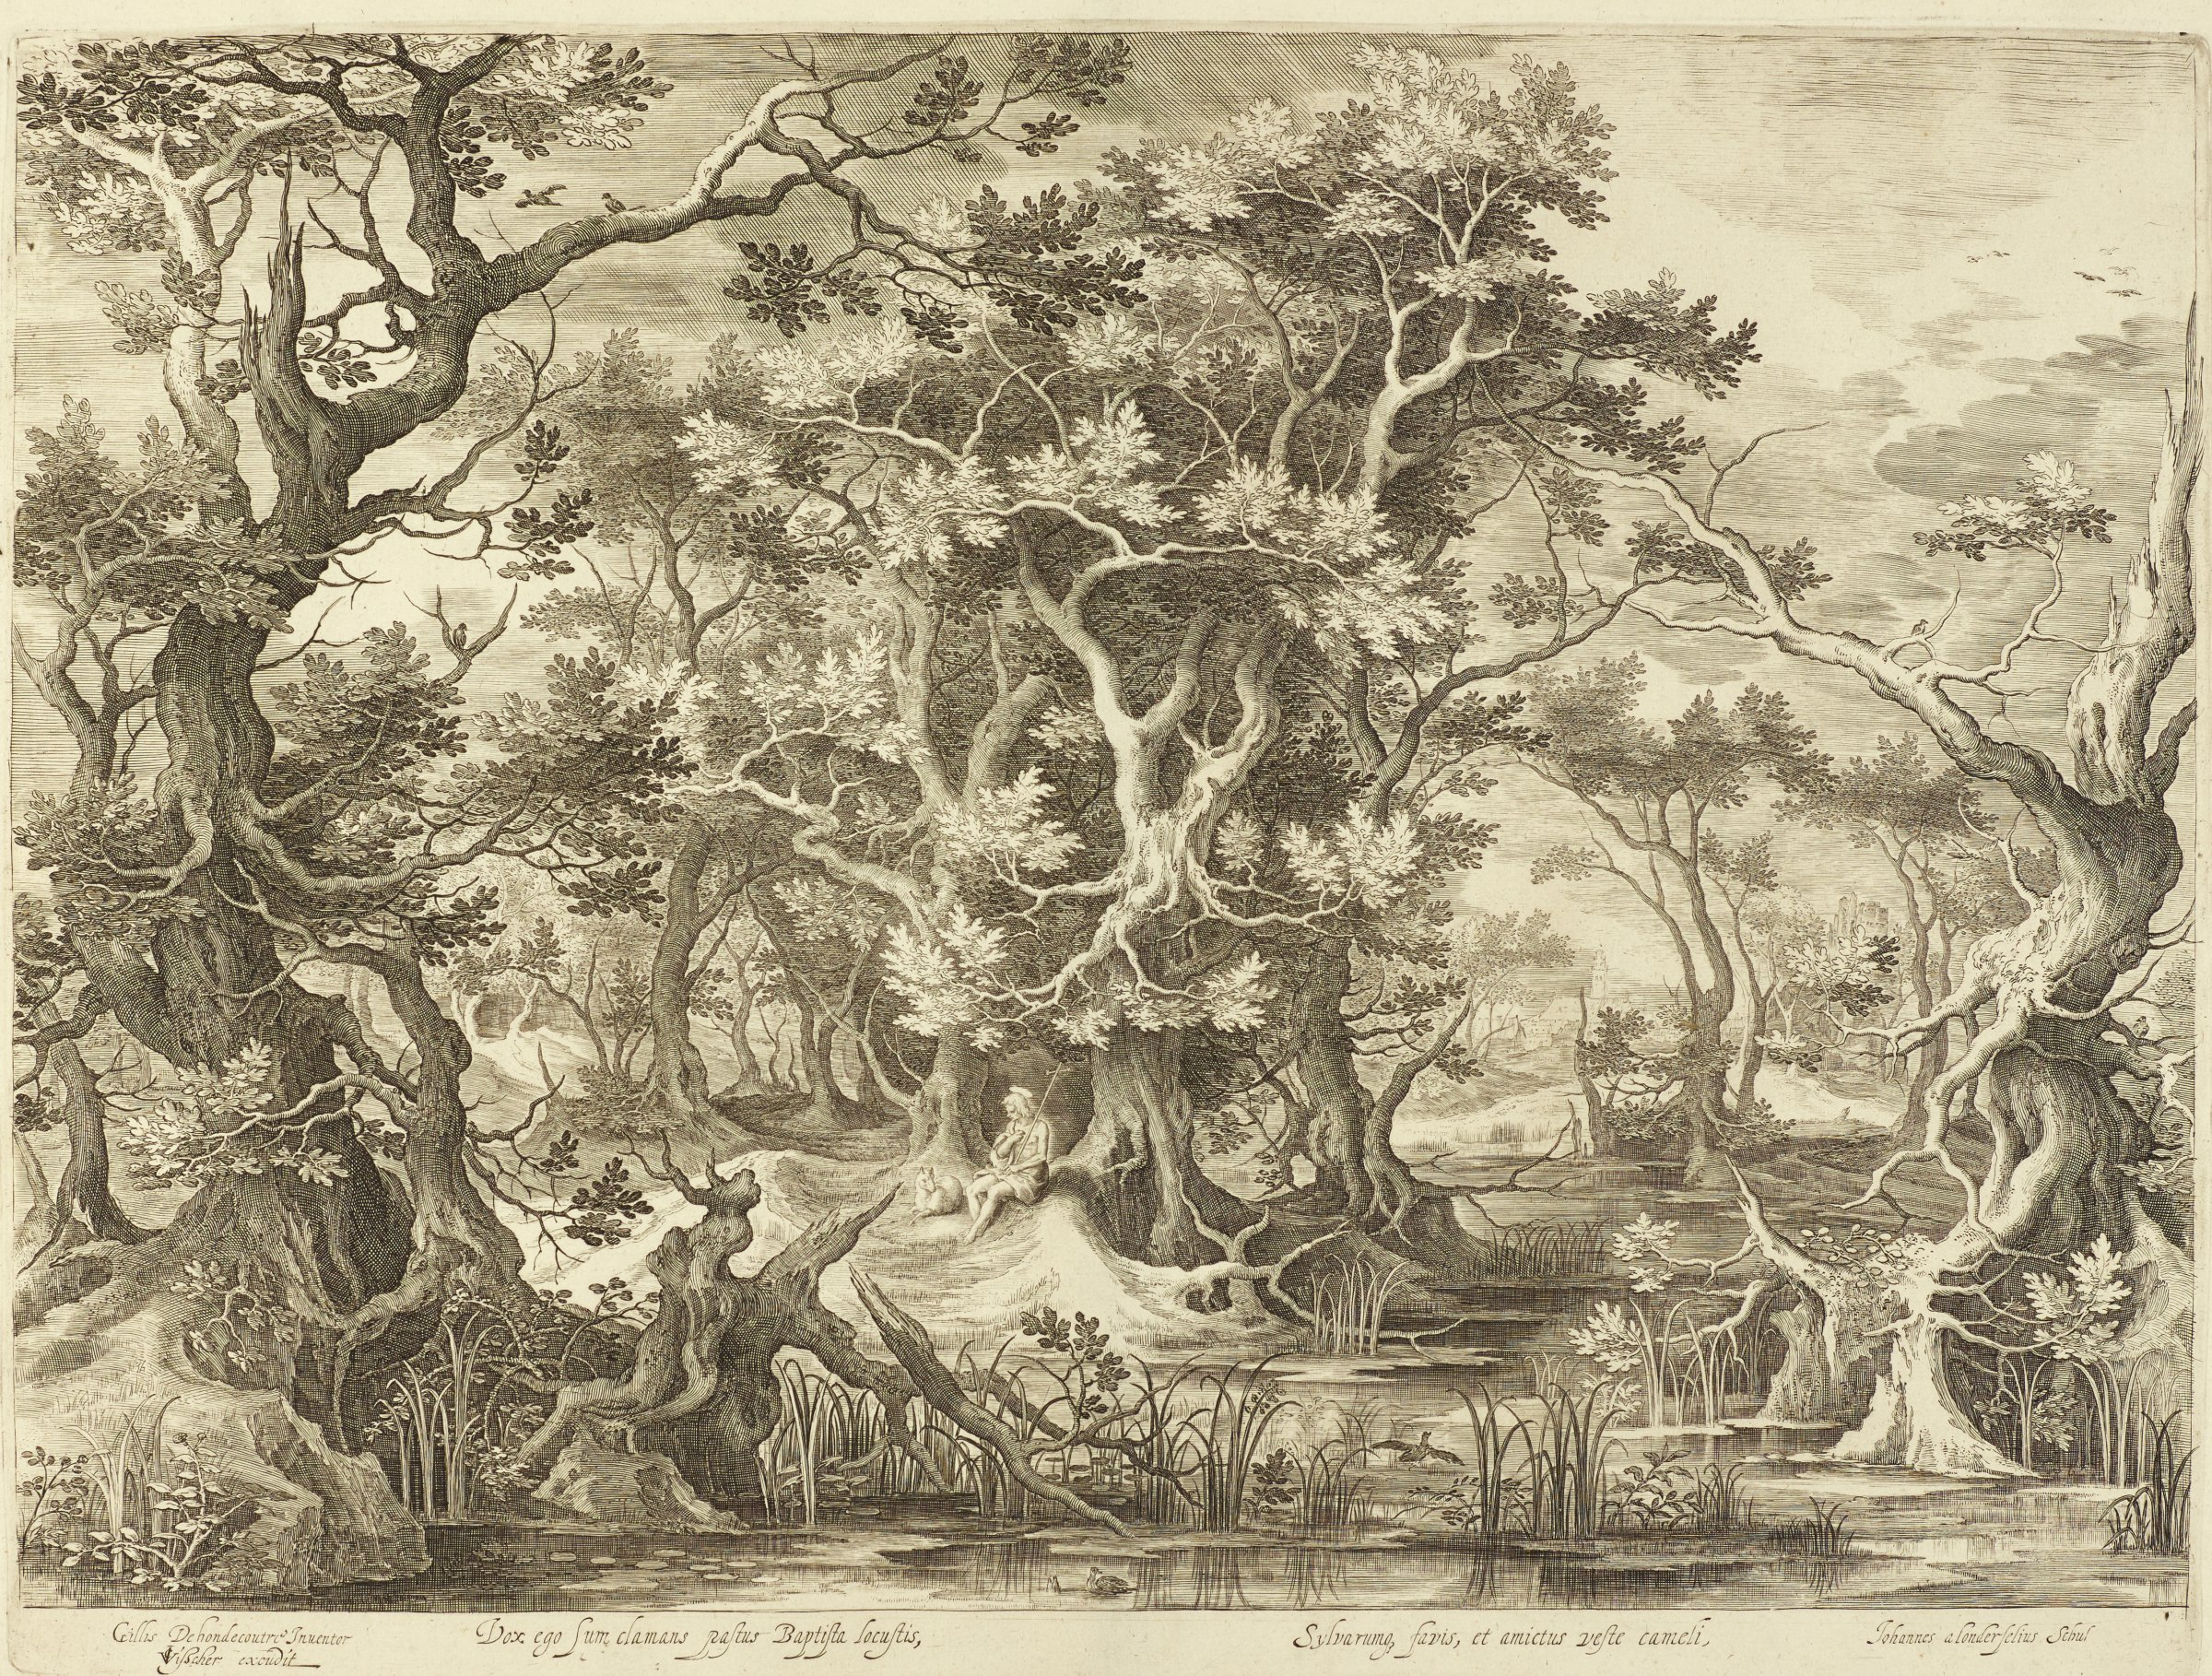 A shallow waterway is surrounded with trees characterized by twisting branches and sparse foliage. A figure sits near the center with a halo and holds a cross. A lamb sits beside him.